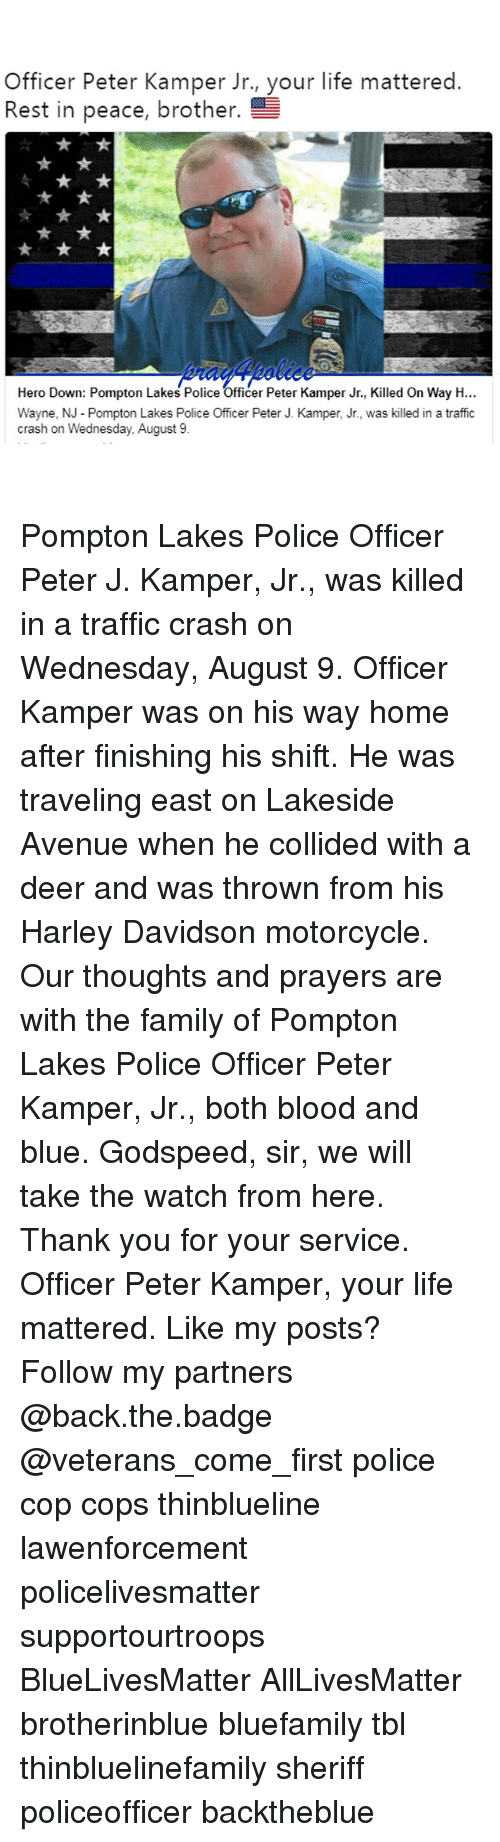 Copping: Officer Peter Kamper Jr., your life mattered  Rest in peace, brother.  Hero Down: Pompton Lakes Police Officer Peter Kamper Jr., Killed On Way H...  Wayne, N Pompton Lakes Police Officer Peter J. Kamper, Jr., was killed in a traffic  crash on Wednesday, August 9 Pompton Lakes Police Officer Peter J. Kamper, Jr., was killed in a traffic crash on Wednesday, August 9. Officer Kamper was on his way home after finishing his shift. He was traveling east on Lakeside Avenue when he collided with a deer and was thrown from his Harley Davidson motorcycle. Our thoughts and prayers are with the family of Pompton Lakes Police Officer Peter Kamper, Jr., both blood and blue. Godspeed, sir, we will take the watch from here. Thank you for your service. Officer Peter Kamper, your life mattered. Like my posts? Follow my partners @back.the.badge @veterans_сome_first police cop cops thinblueline lawenforcement policelivesmatter supportourtroops BlueLivesMatter AllLivesMatter brotherinblue bluefamily tbl thinbluelinefamily sheriff policeofficer backtheblue